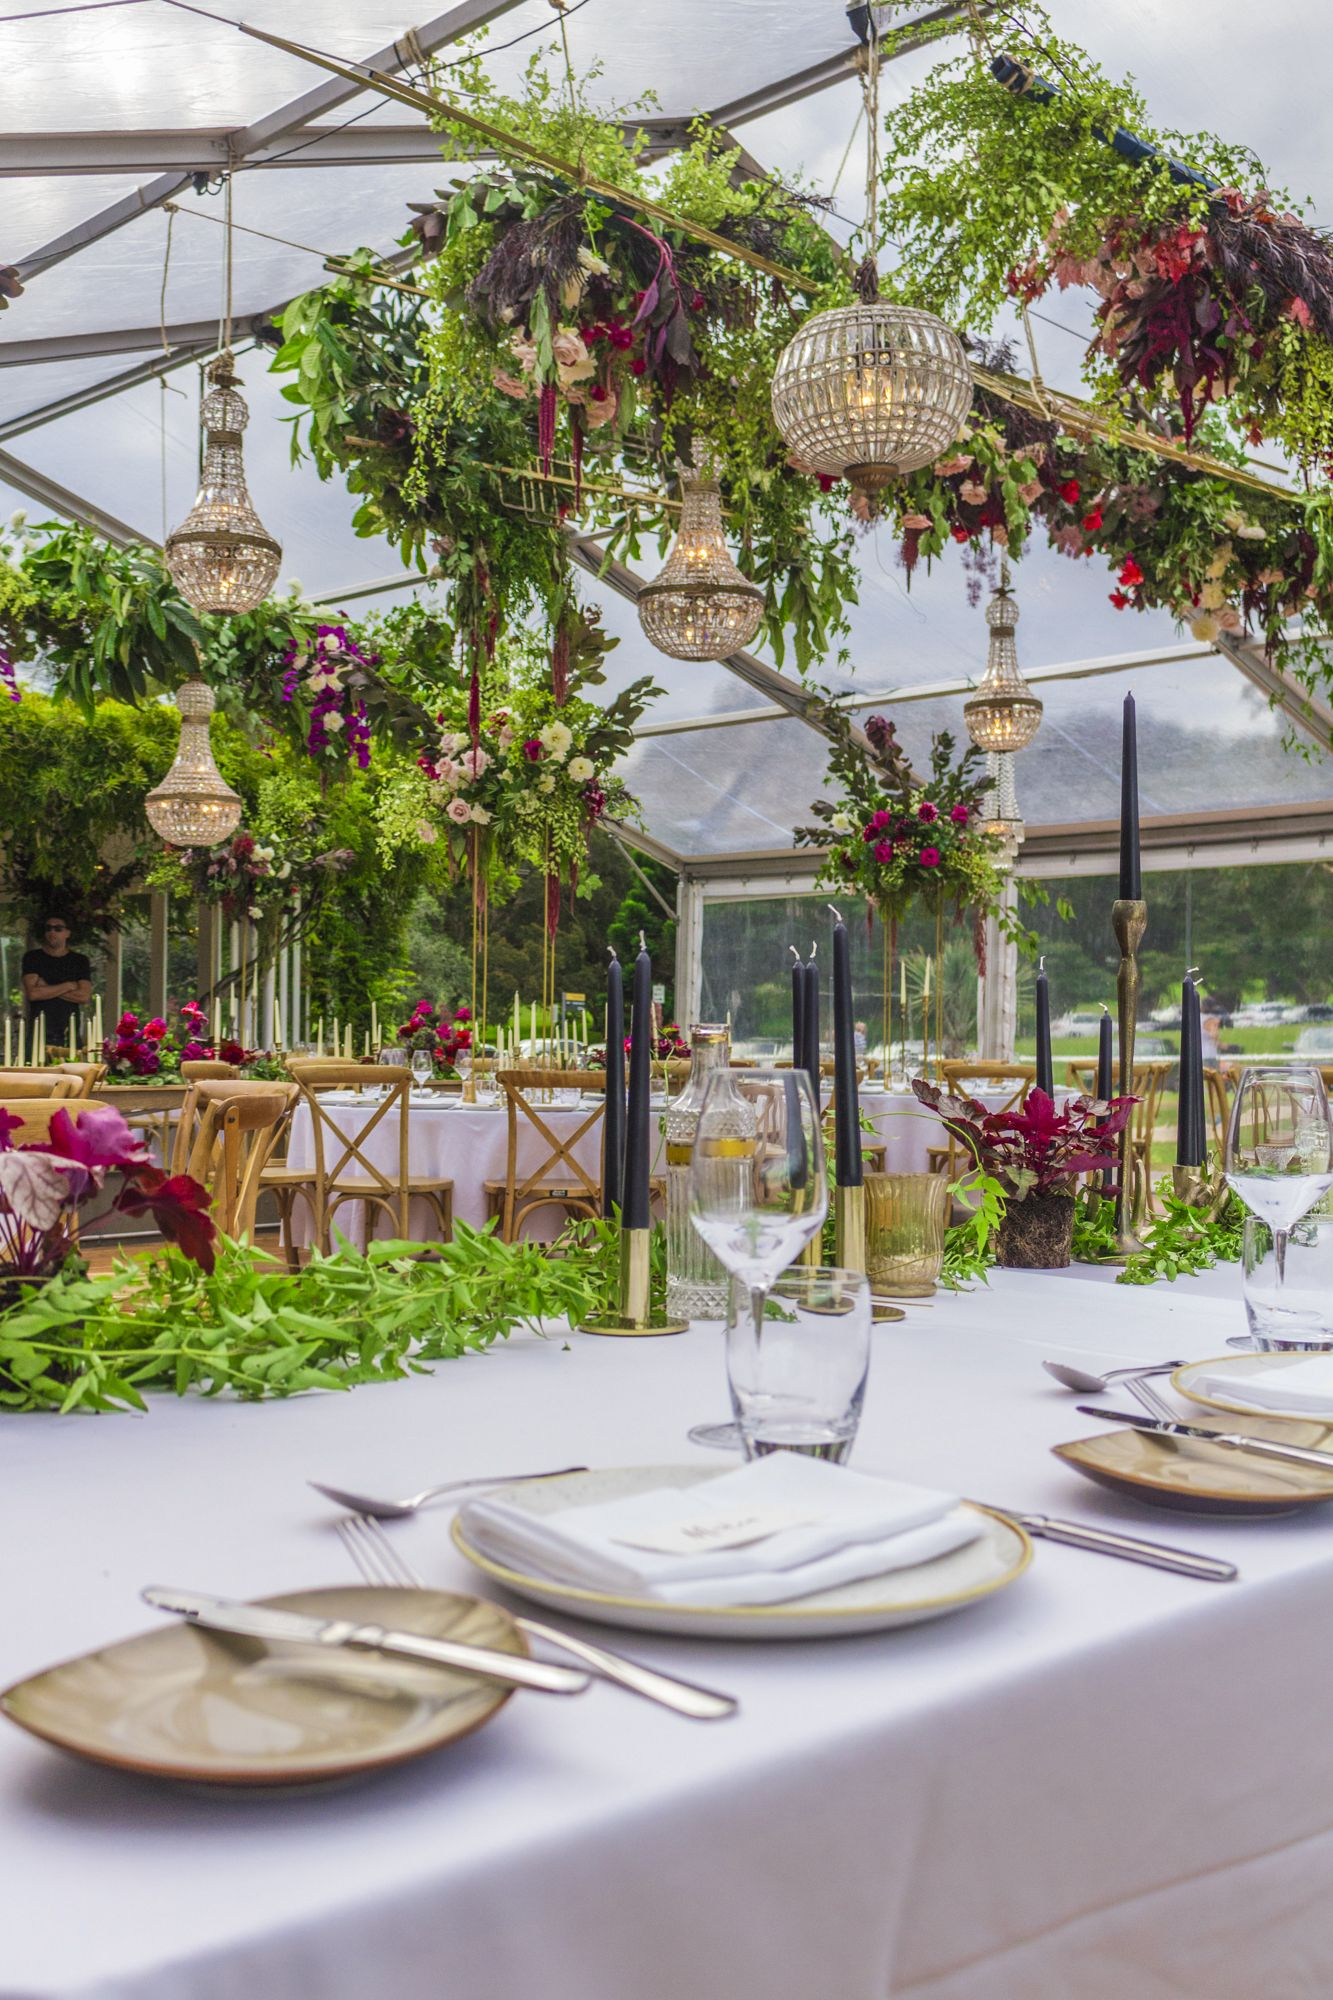 Marquee Weddings // Florals by She Designs // Centennial